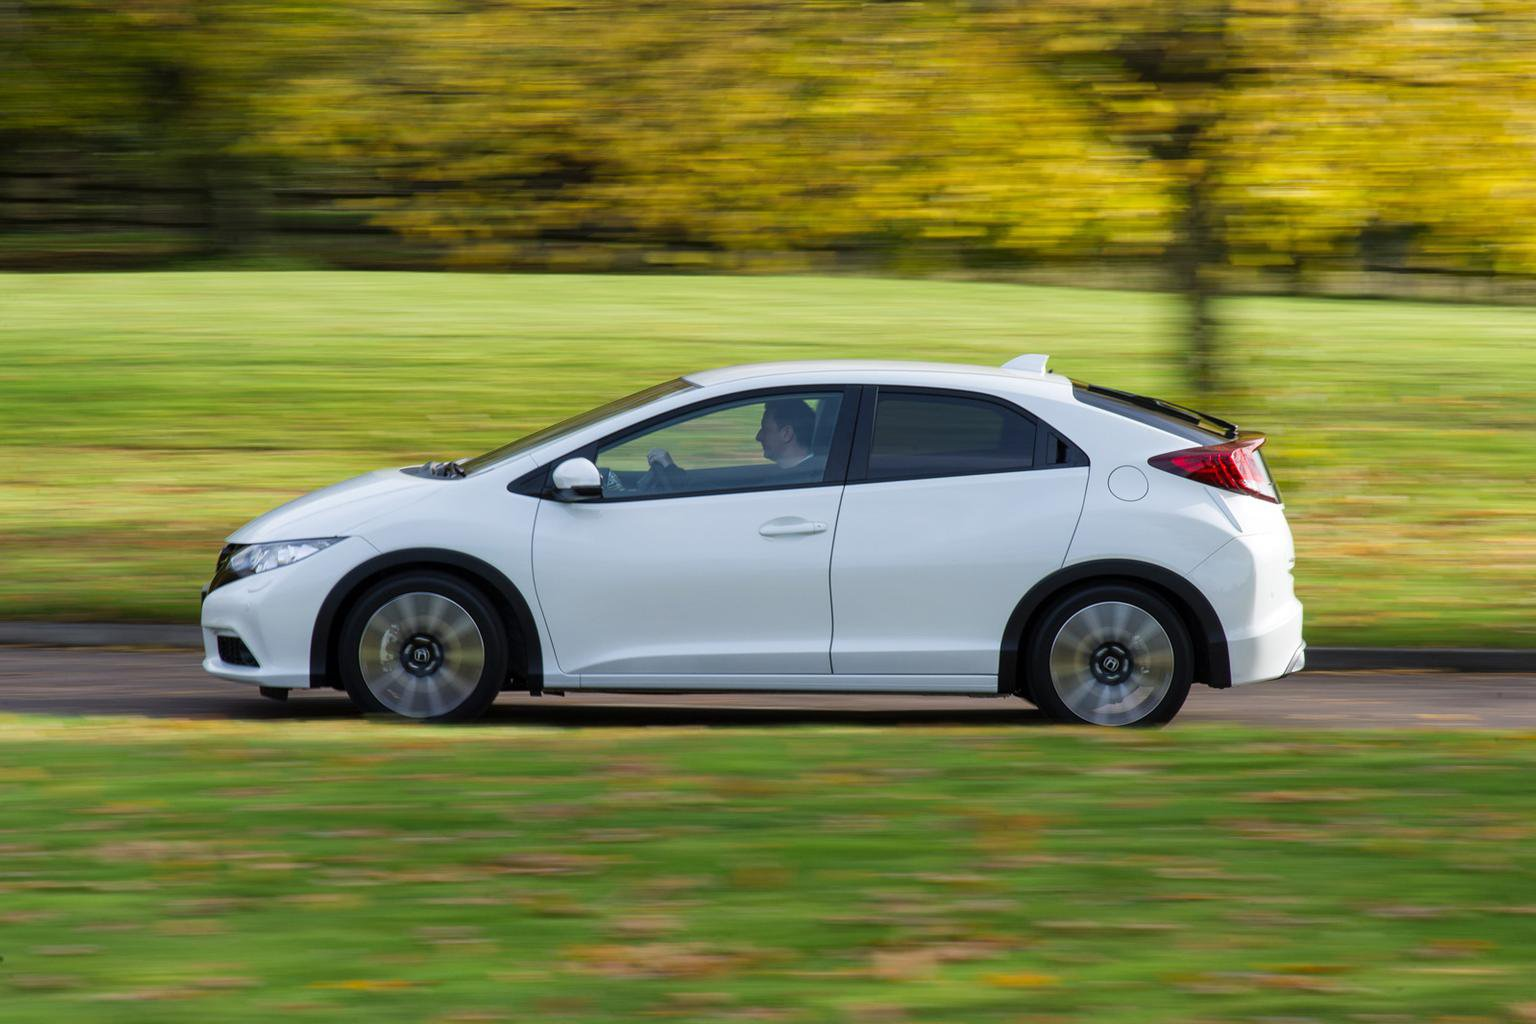 2014 Honda Civic review